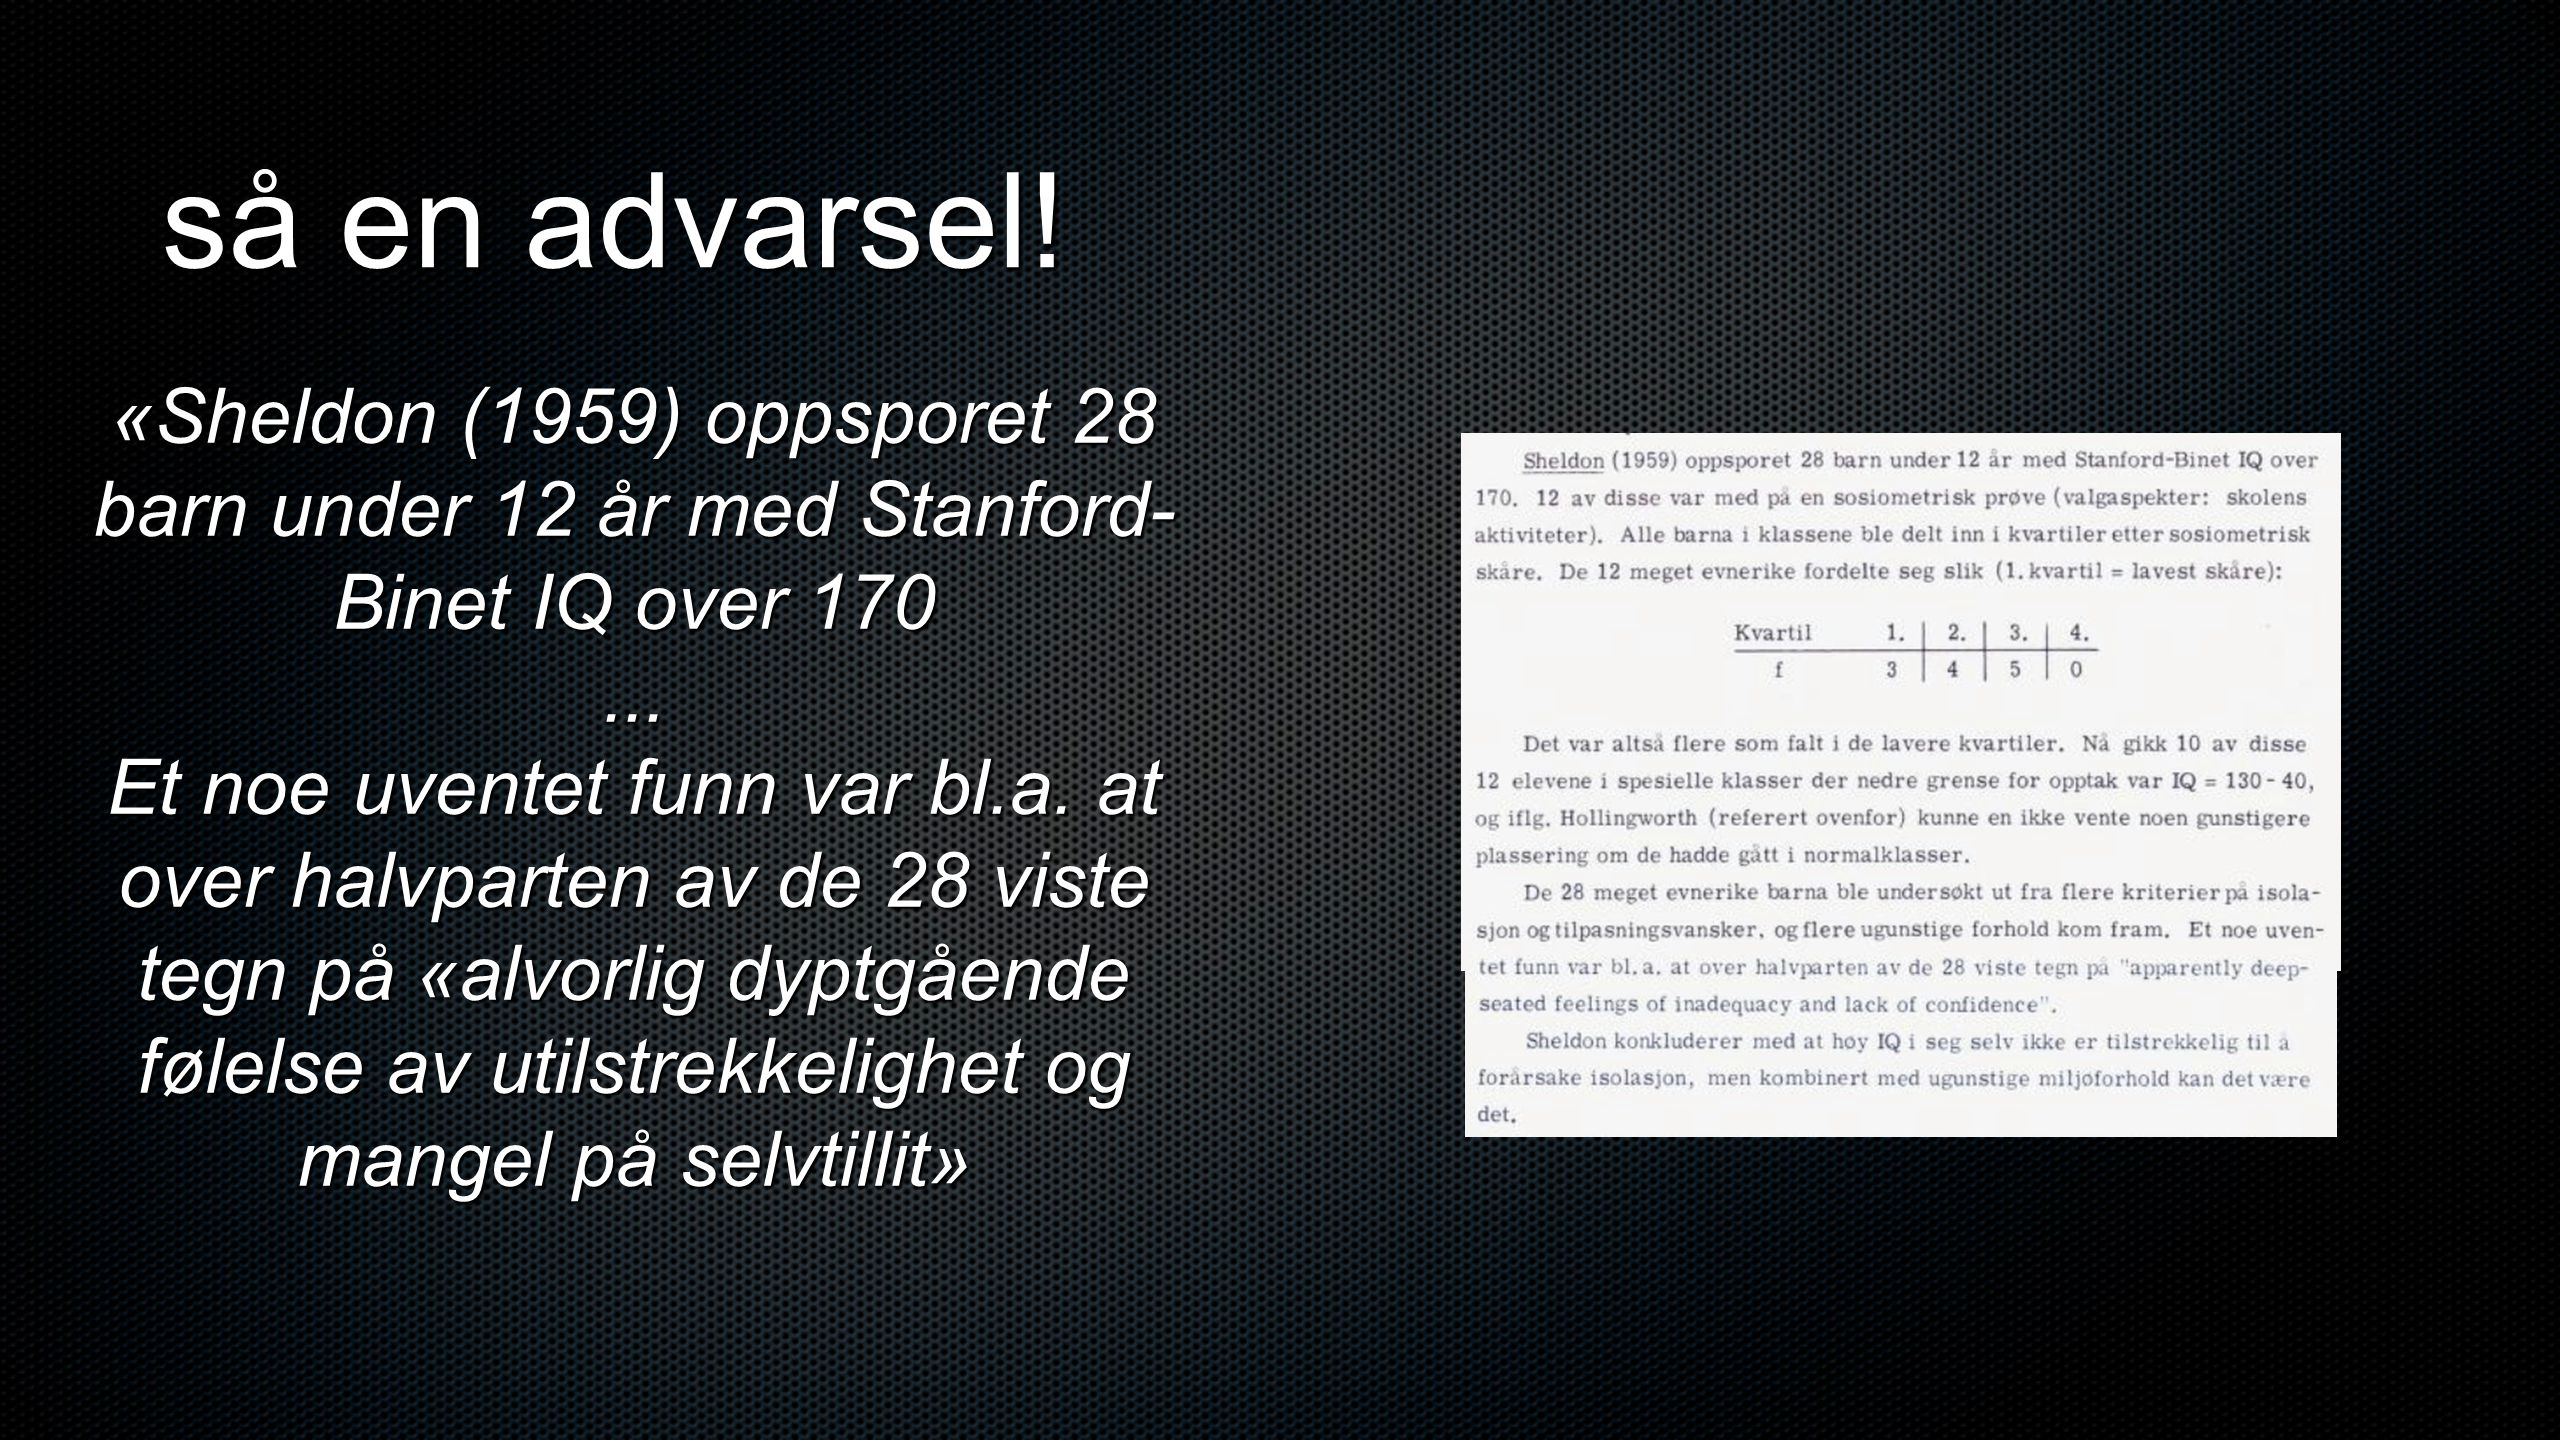 så en advarsel! «Sheldon (1959) oppsporet 28 barn under 12 år med Stanford-Binet IQ over 170. ...